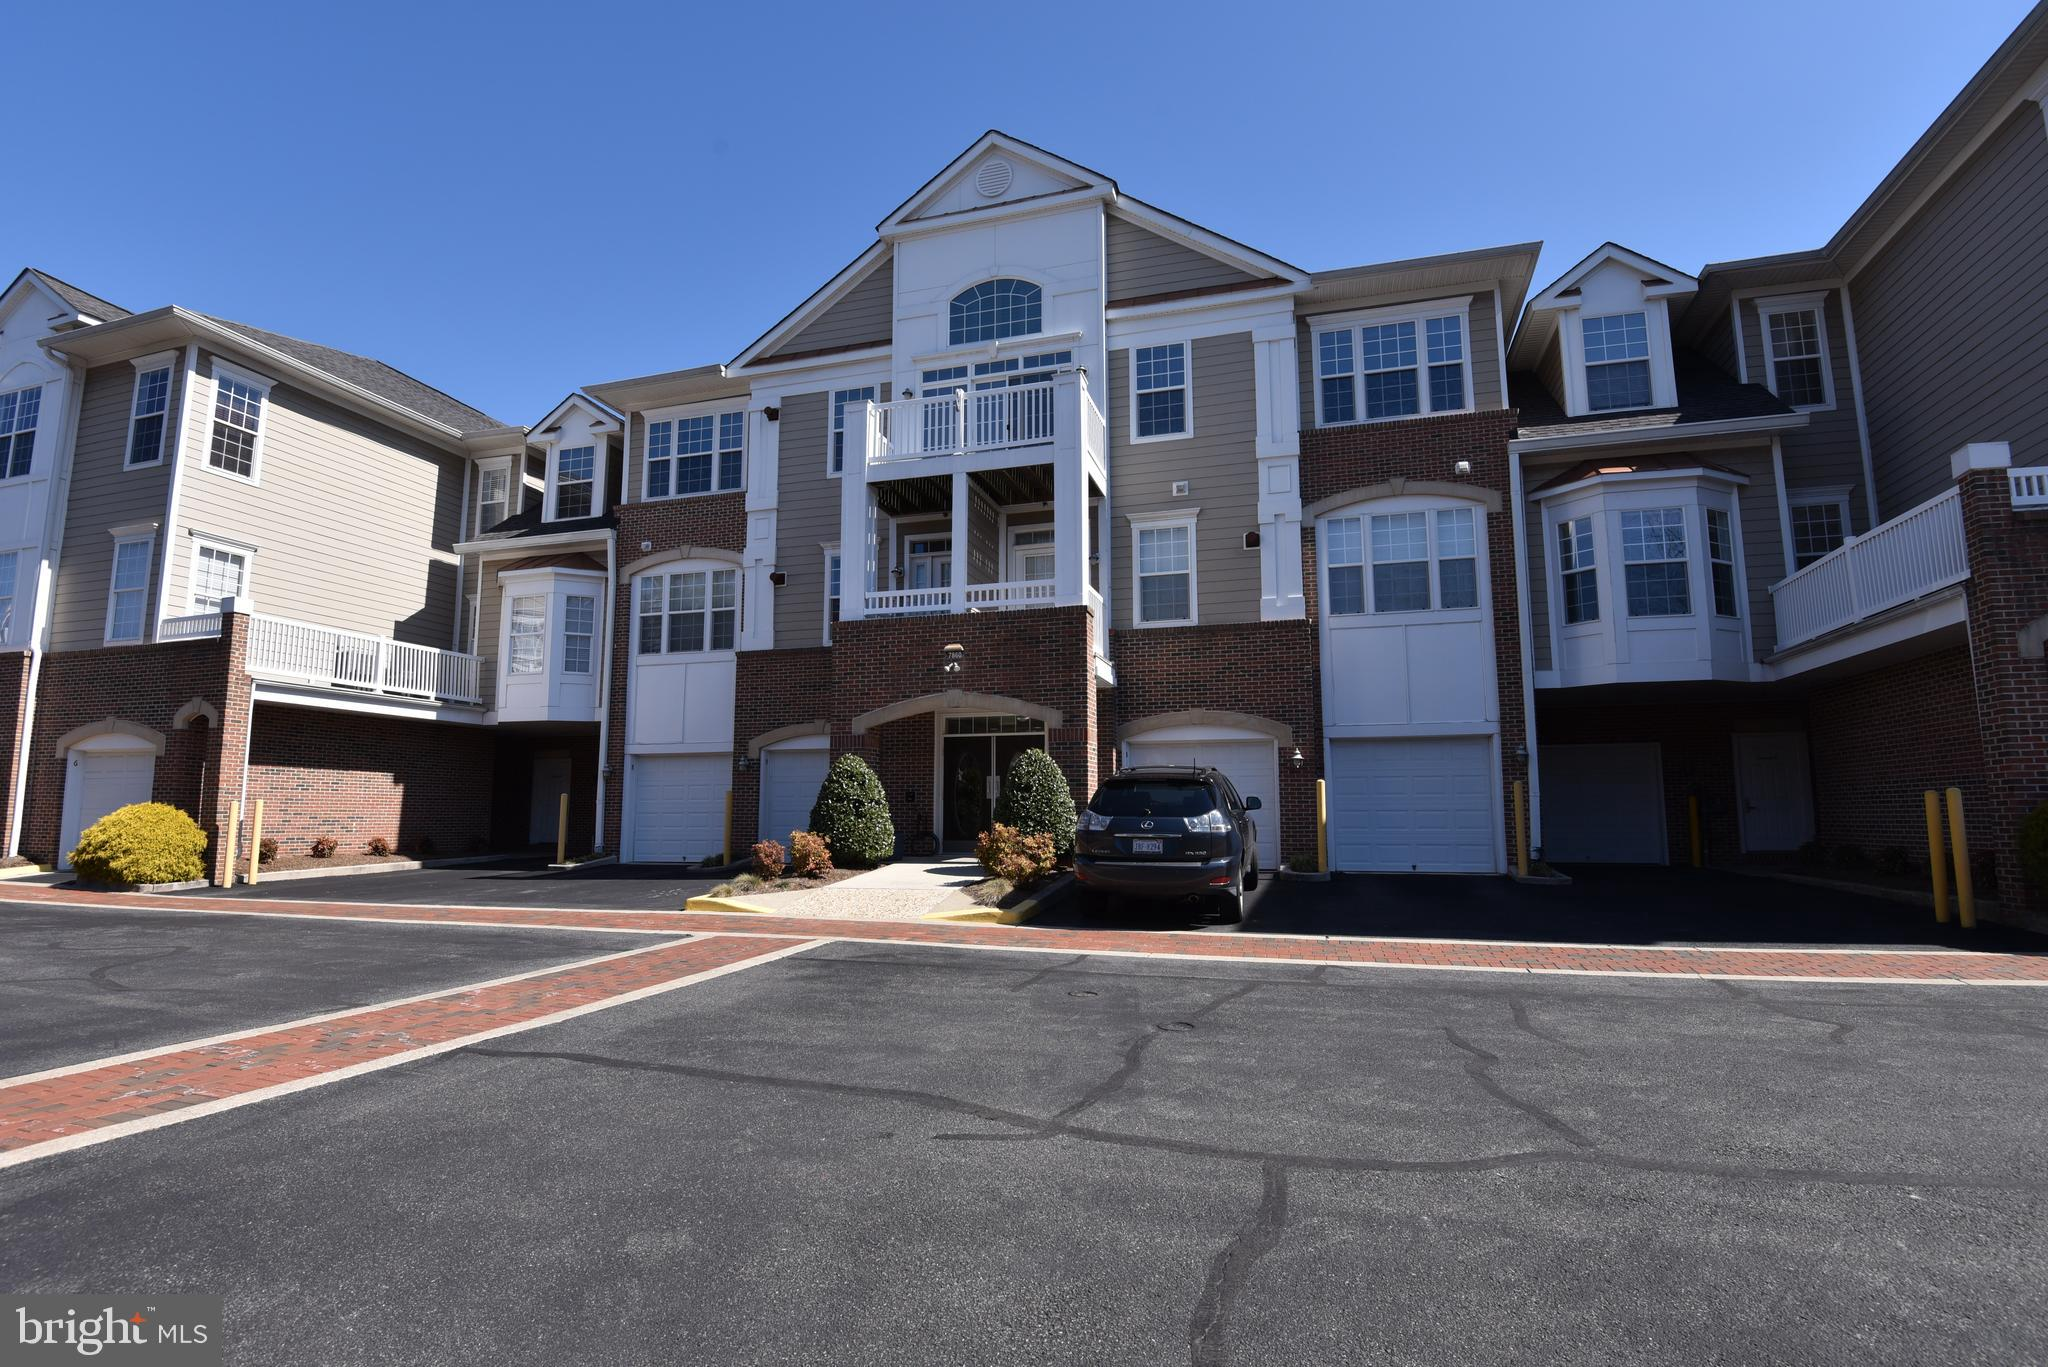 """Wonderful Open Floor Plan Condo in an Active Adult Community (55+). HiddenBrooke is a Carefree Living and Secure Community near all Major Commuter Routes. Convenient Location: 9 Minutes to Springfield Metro, Springfield Town Center, Close to Fort Belvoir. Many Upgrades Throughout the Entire Unit. Upgraded Gourmet Chef~s Kitchen with Granite Counters, Stainless Steel Appliances, and Plenty of Cabinet and Counter Space. Beautiful Wood Floors Throughout. New Air Conditioner and Water Heater. Spacious Master Bedroom Suite with Spa Worthy Bath, and Two Closets. Relax by the Cozy Fireplace in your Large Living Room.  Within this Open Floor Plan, there is a Separate Dining Room. Private Balcony Overlooking Treed Area for Outdoor Relaxing and Bird Watching. The """"Bistro"""" is Located Down the Street Where the Exercise Room, Library, Club Room, and Kitchen ~ A Perfect Entertaining Venue.  Just Outside the Bistro is an Outdoor Patio with Dining Area, Community Grill/Outdoor Kitchen. WELCOME HOME!"""